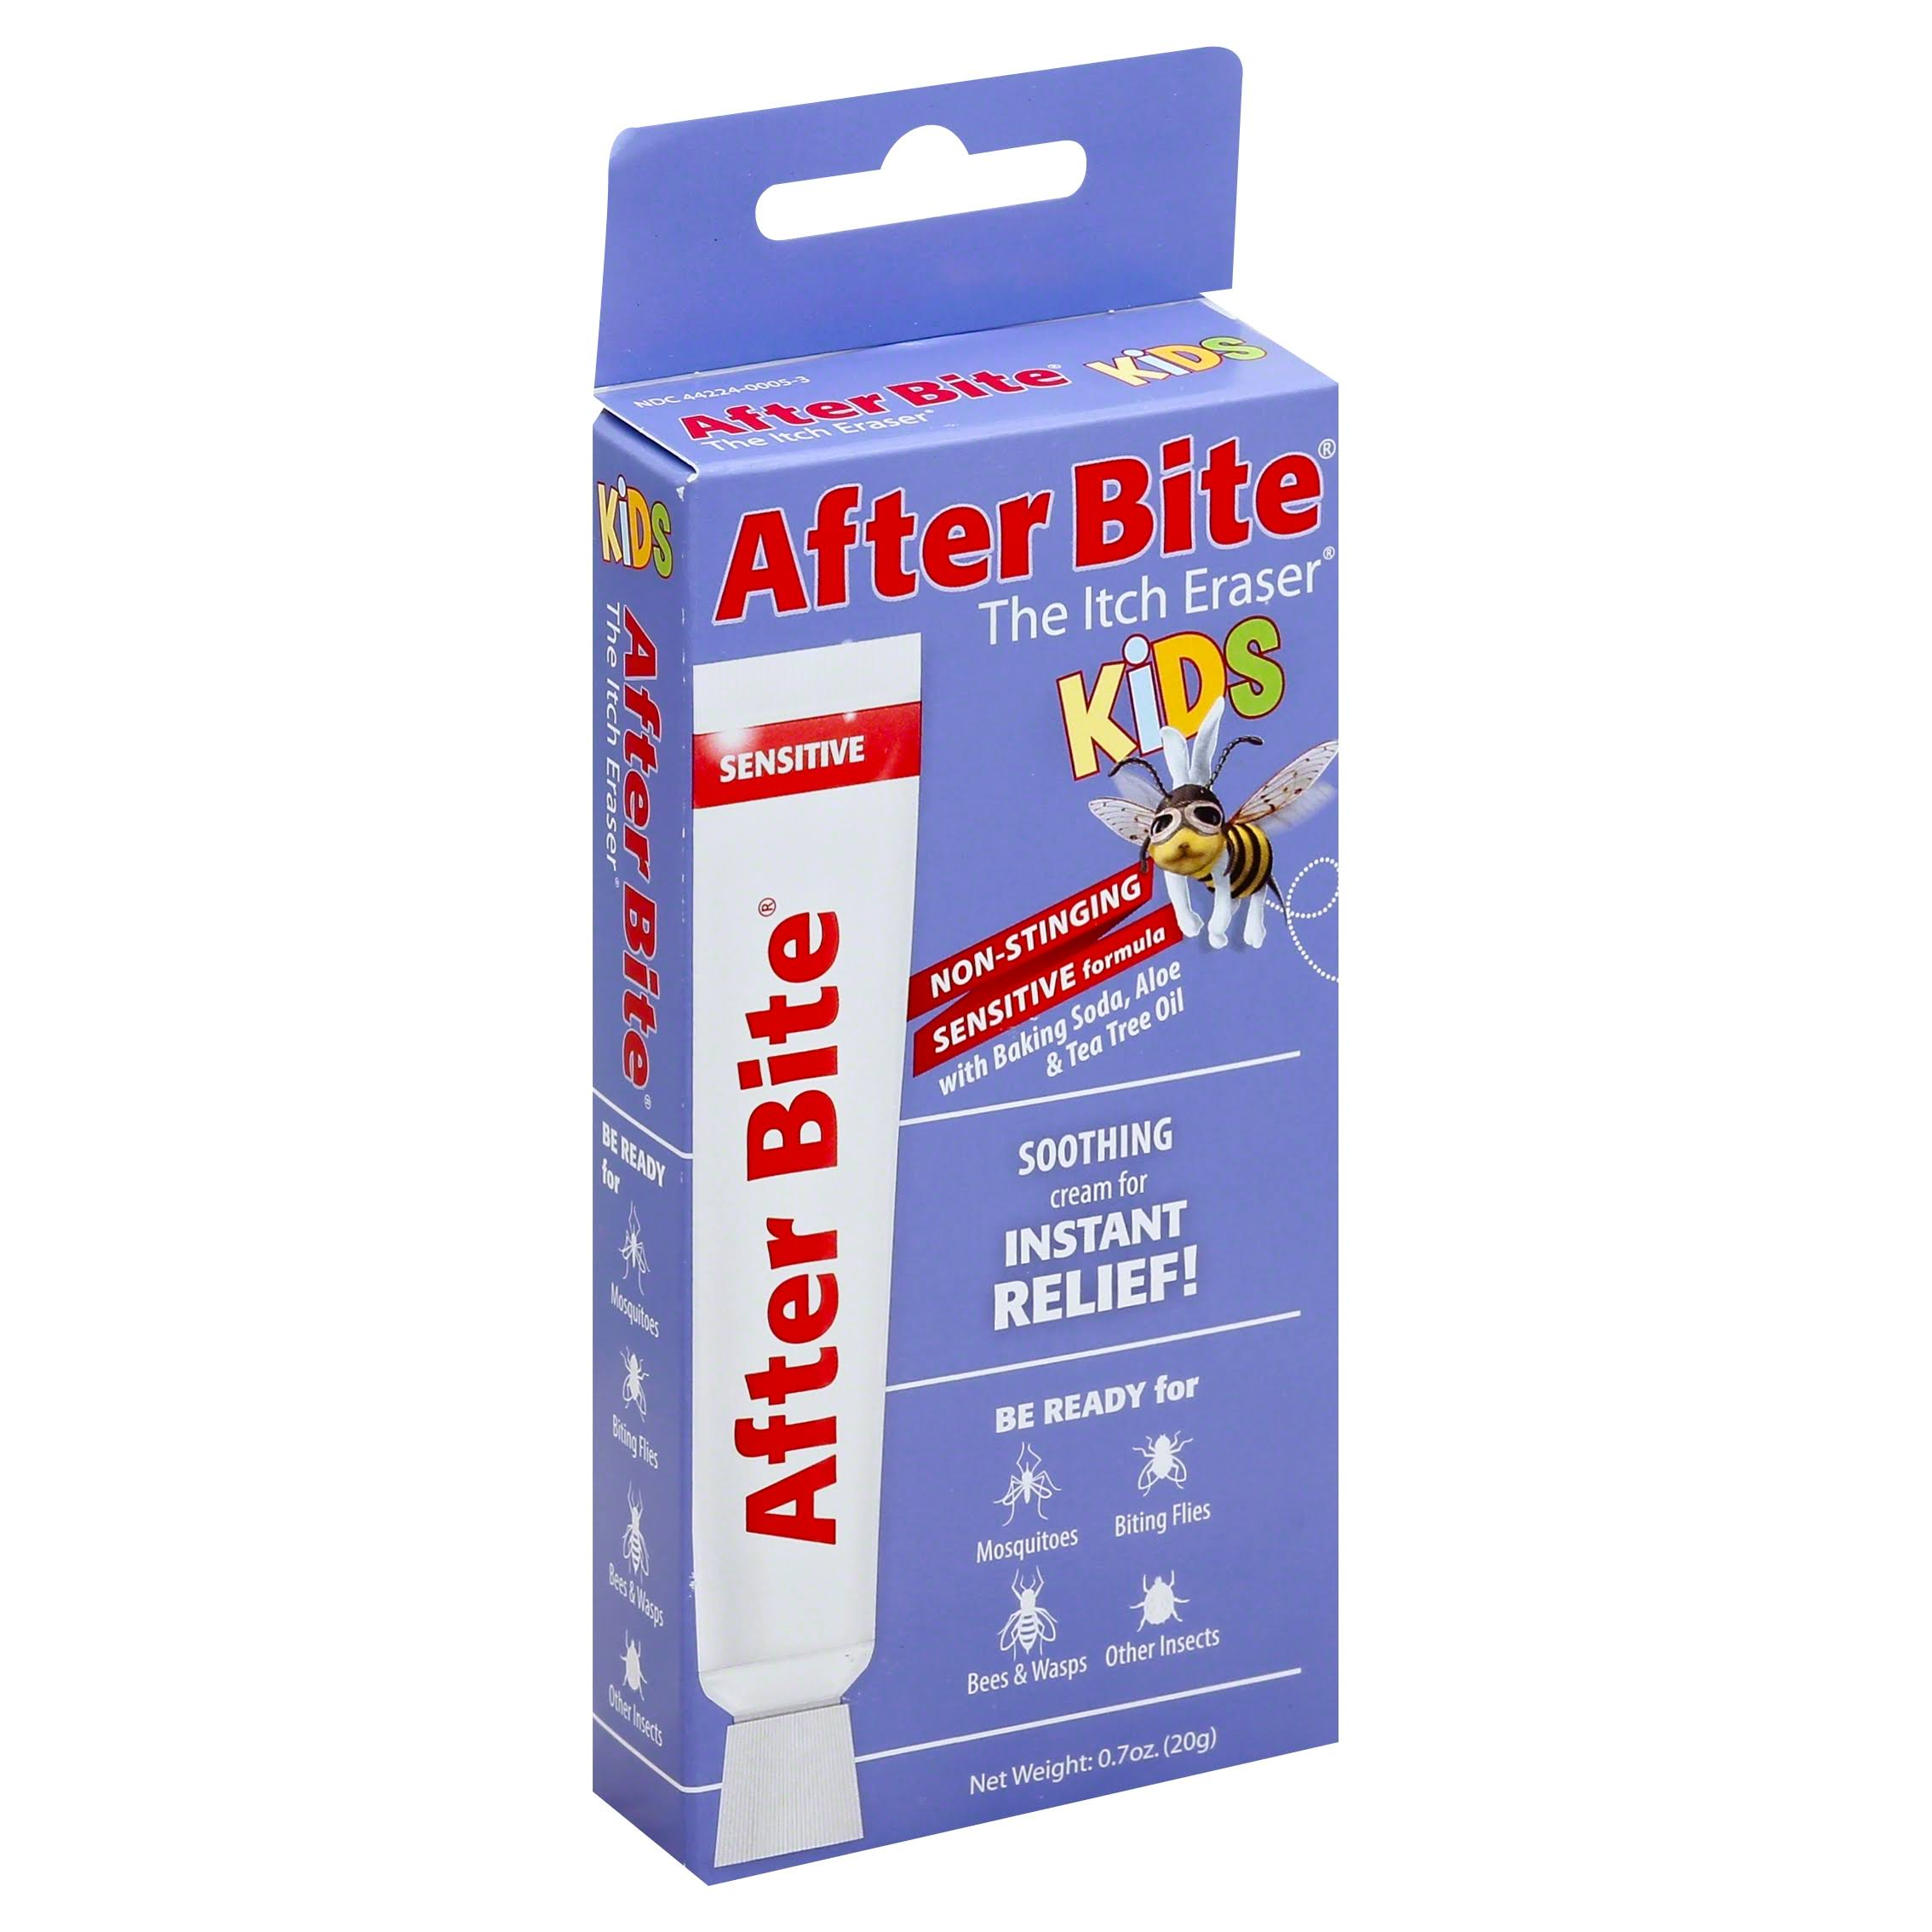 After Bite Kids Soothing Cream for Instant Itch Relief - 0.7oz